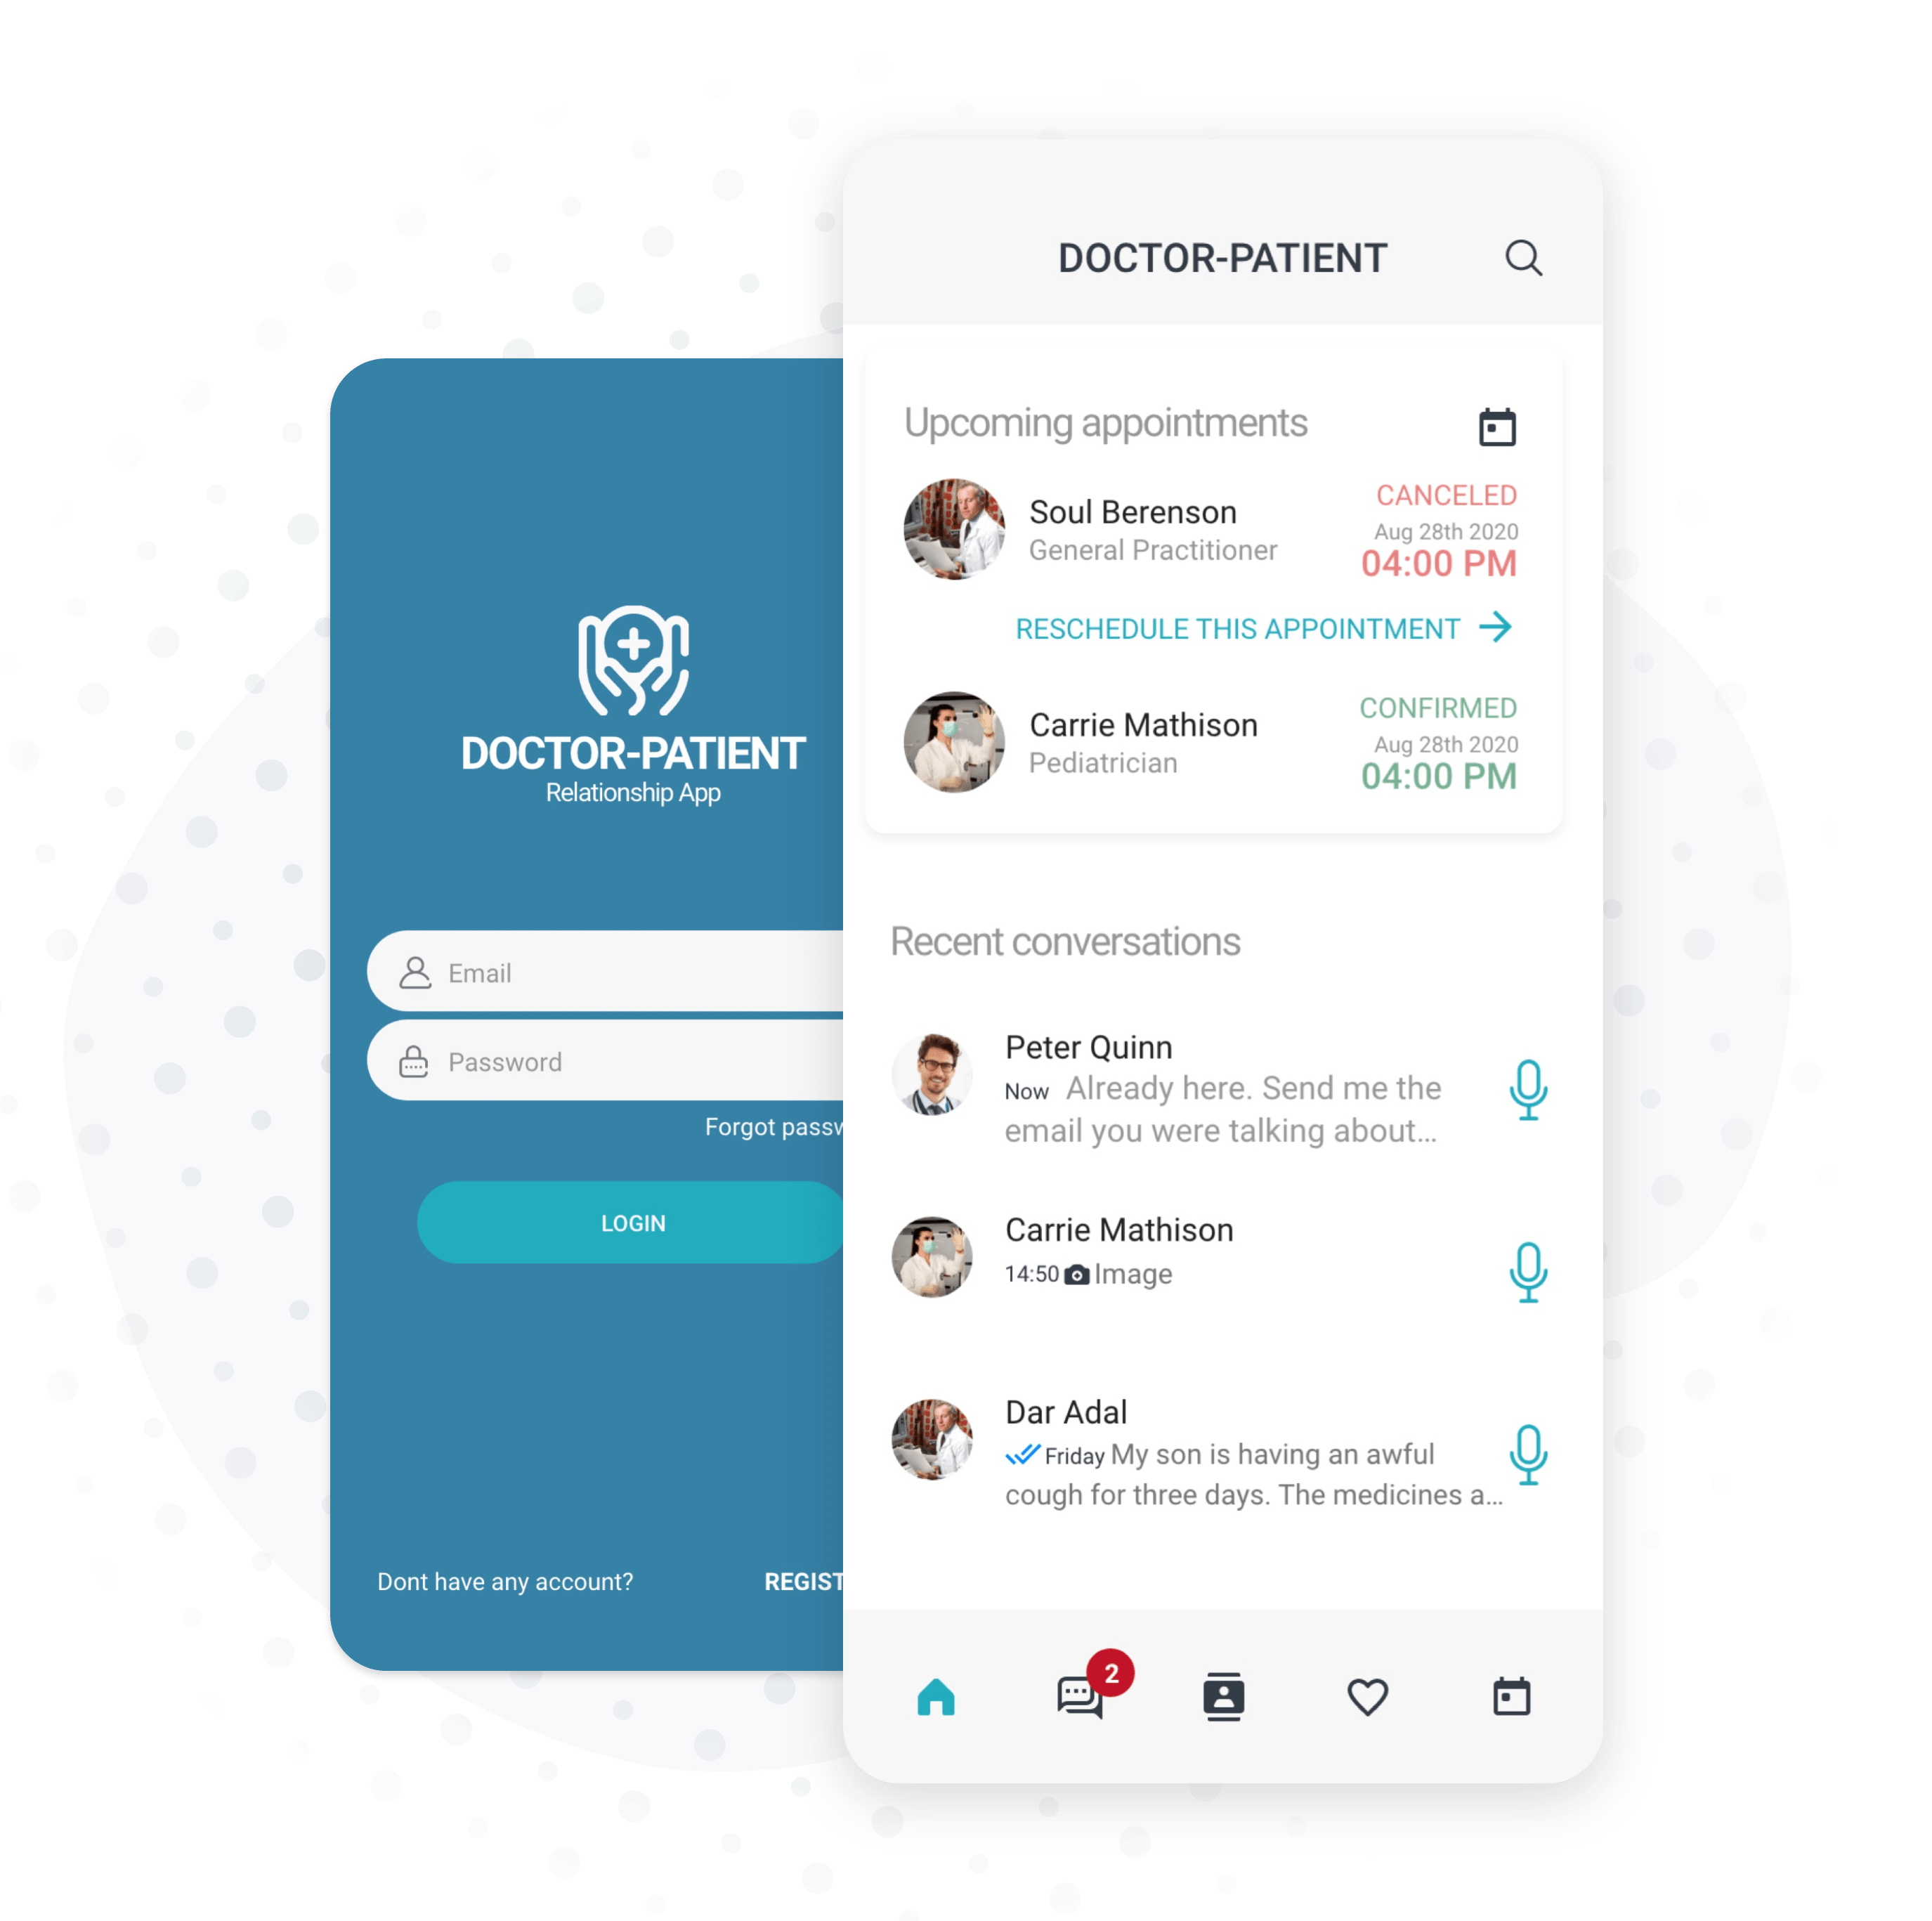 messaging app for doctors and patients